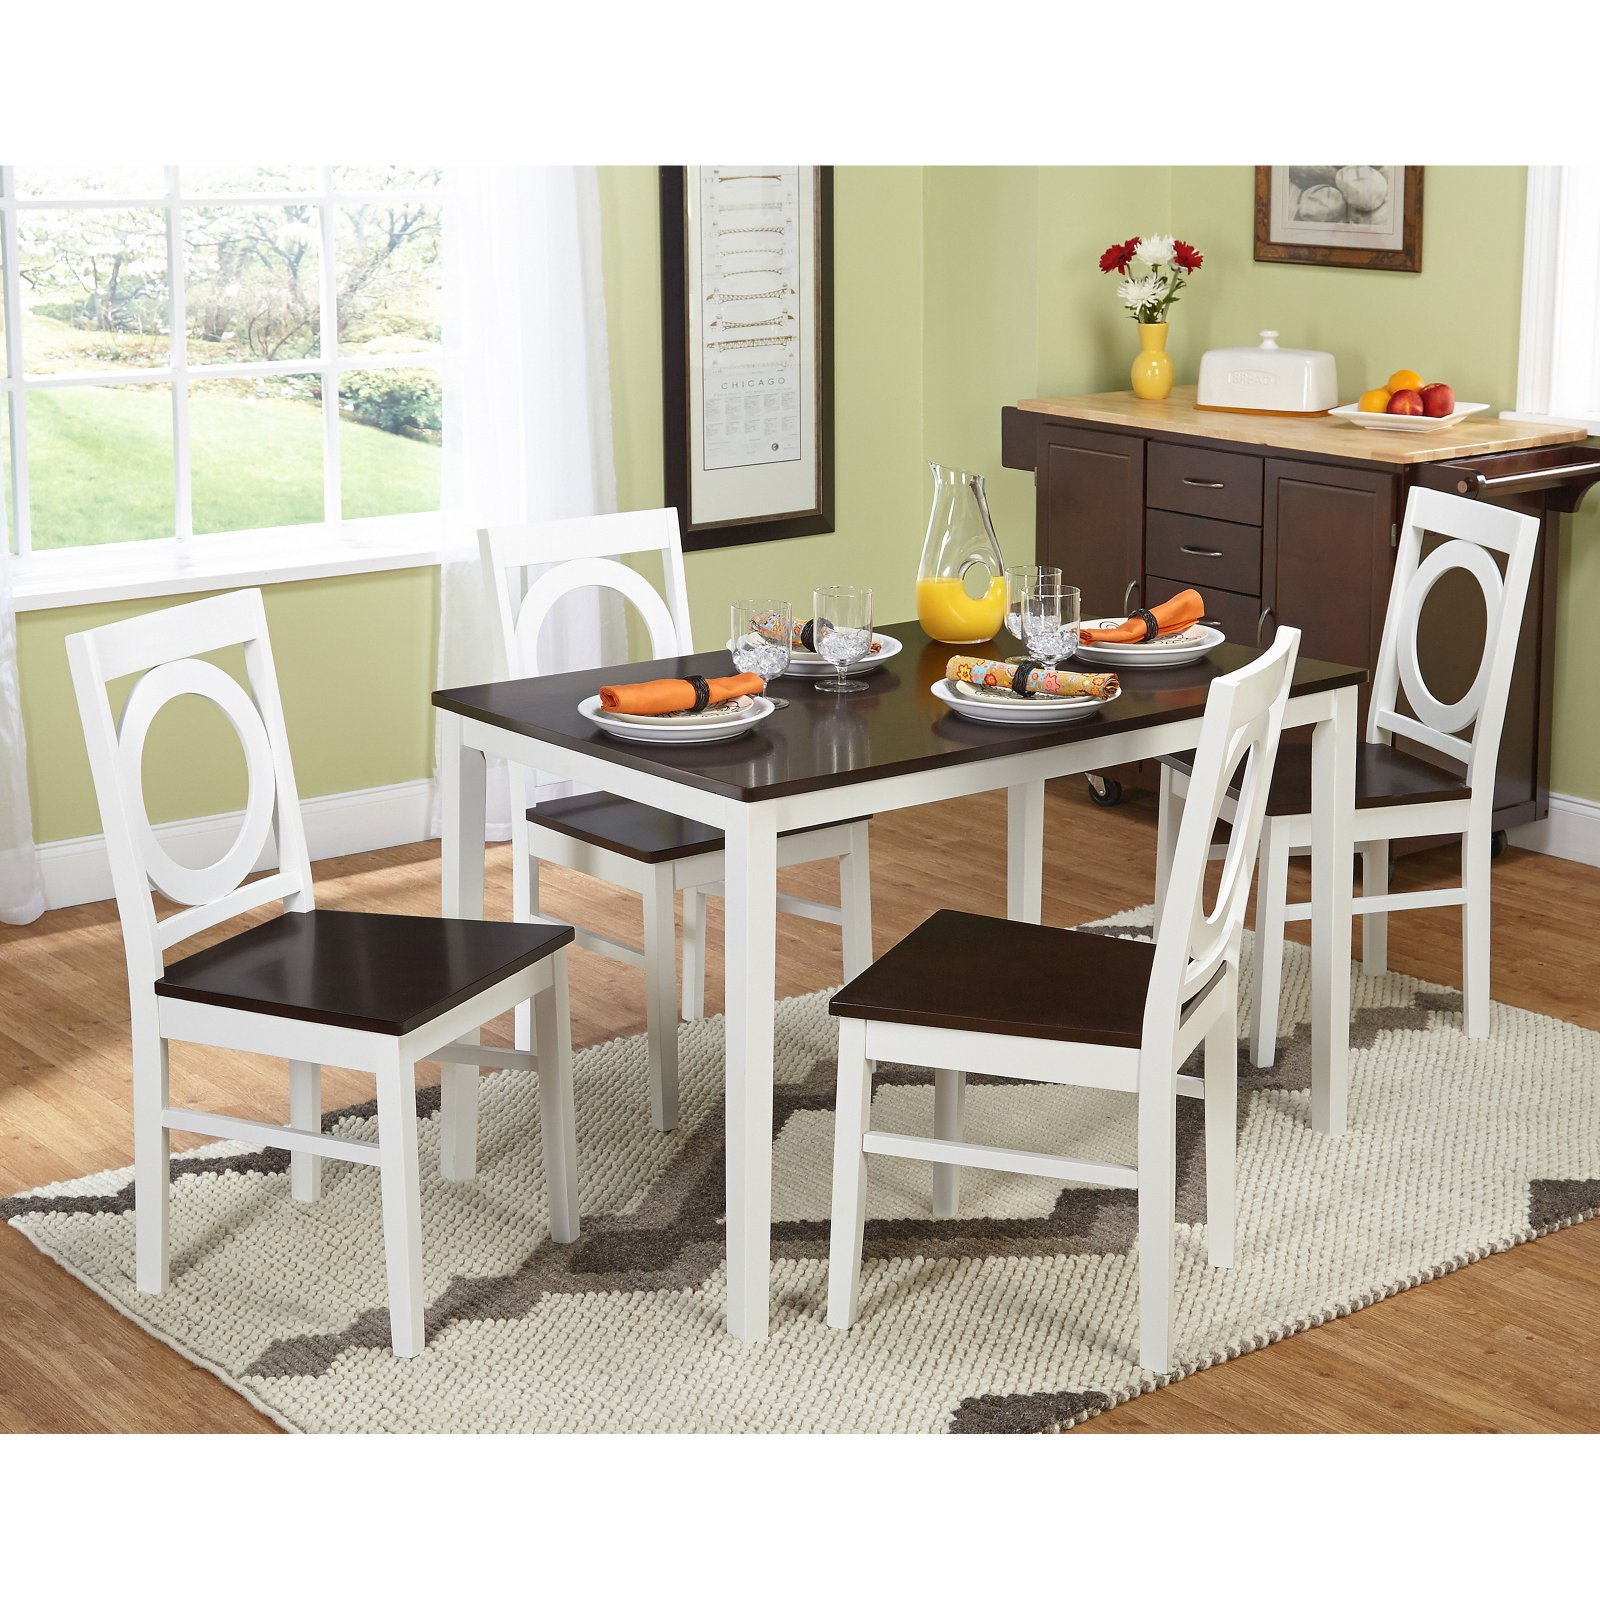 Target Marketing Systems Catania 5 Piece Dining Table Set In 2019